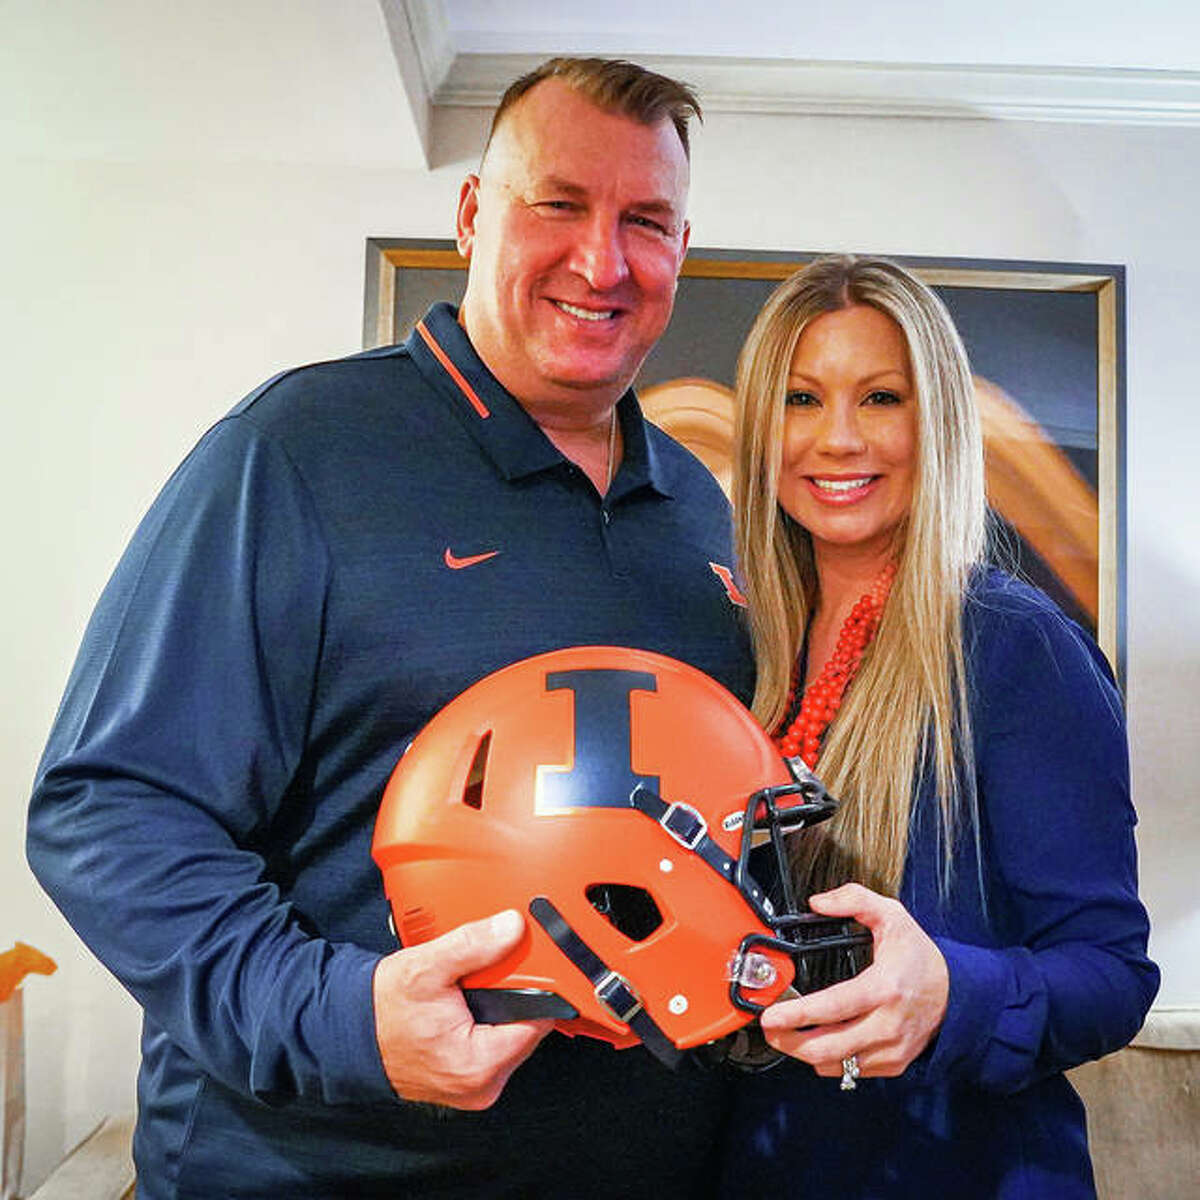 Bret Bielema and his wife Jen pose with an Illinois helmet after arriving in Champaign following the weekend announcement that Bielema has been hired as the Illini's new coach.